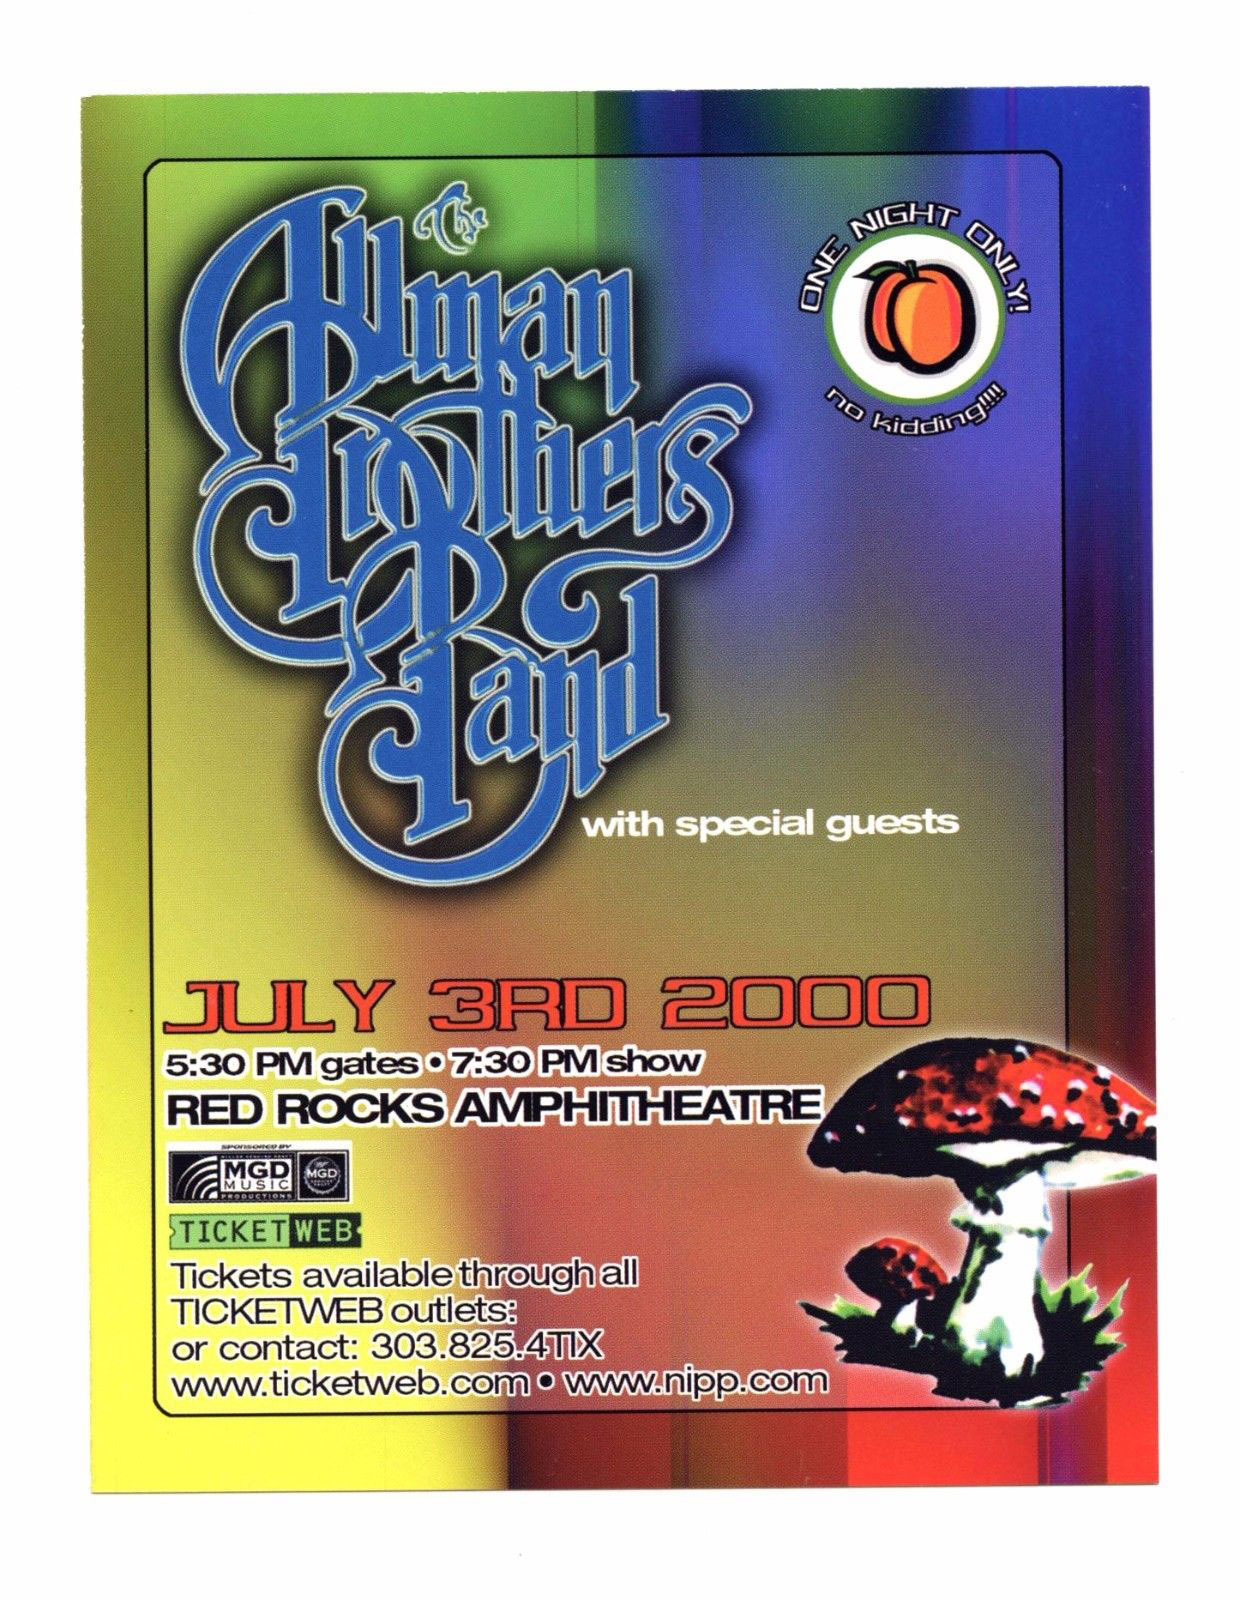 Allman Brothers Band Flyer 2000 Jul 3 Red Rock Amphitheatre Promo 2 sided